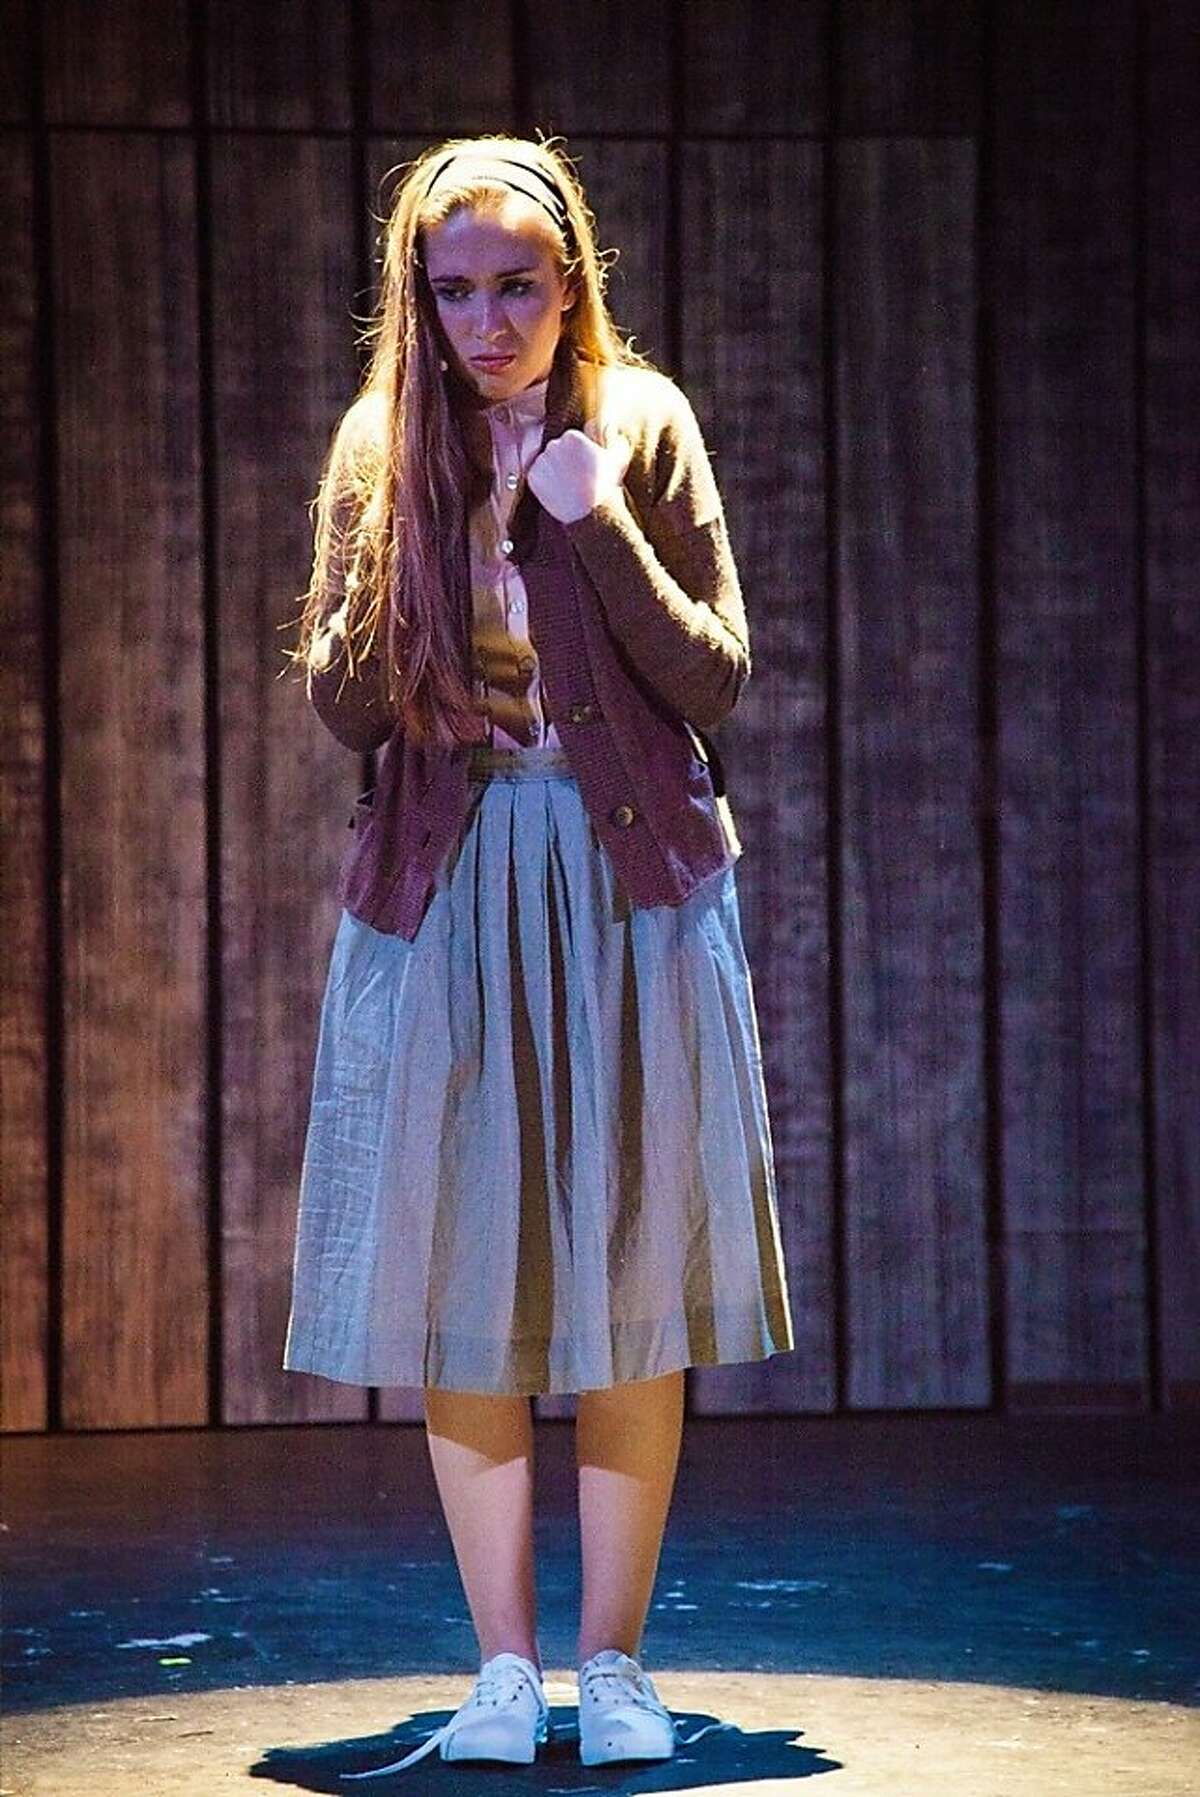 Carrie (Cristina Ann Oeschger) struggles to control the forces inside her in Ray of Light's local premiere of